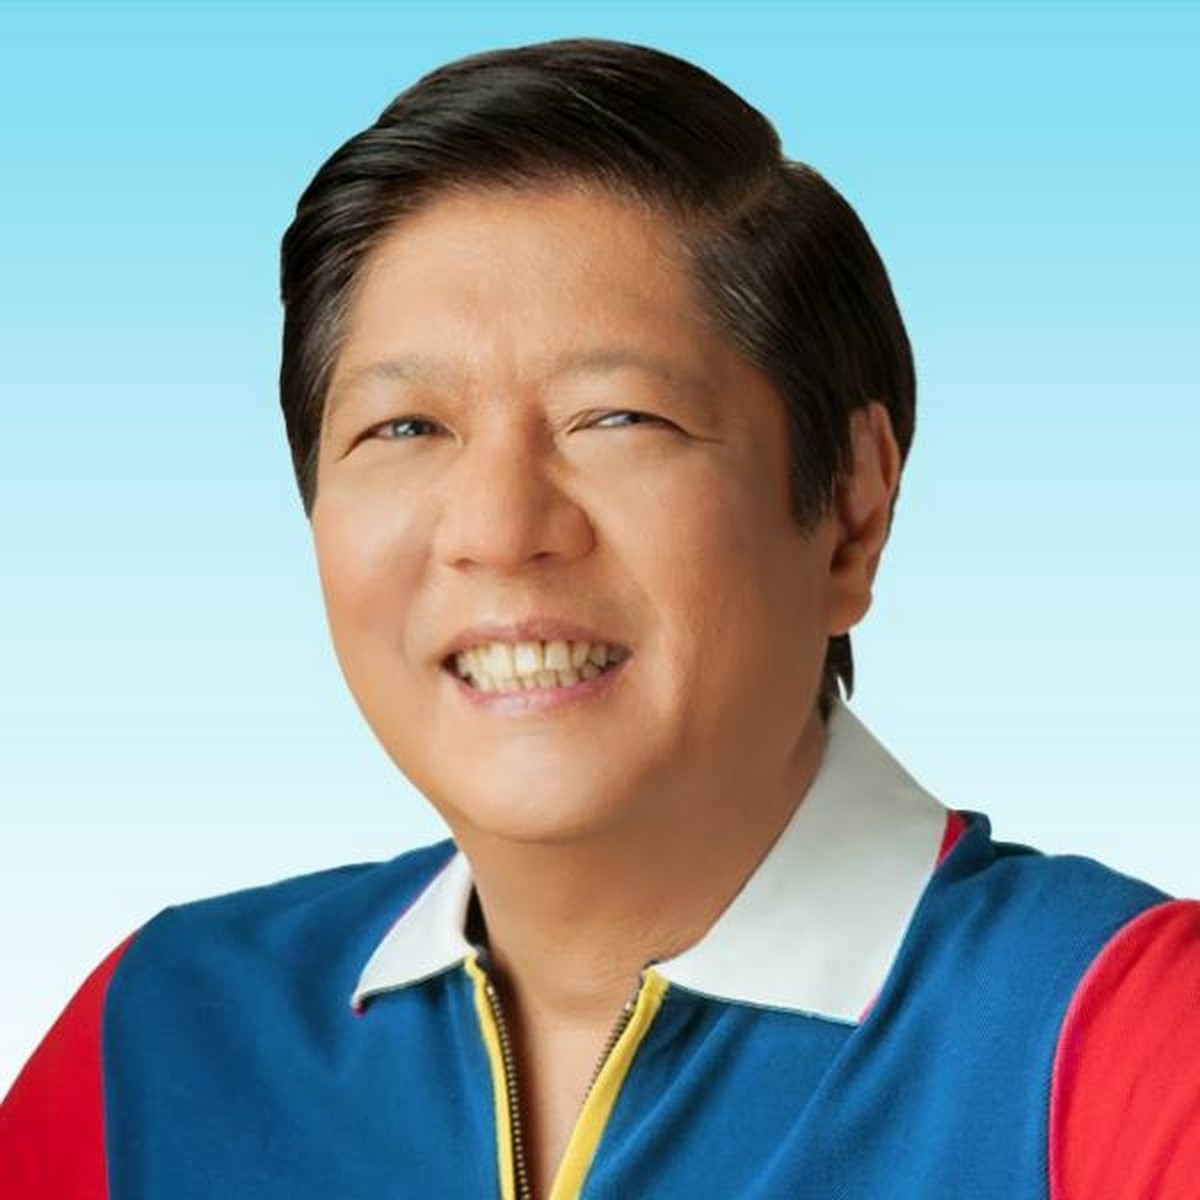 philippine-elections-2022-the-presidential-candidates